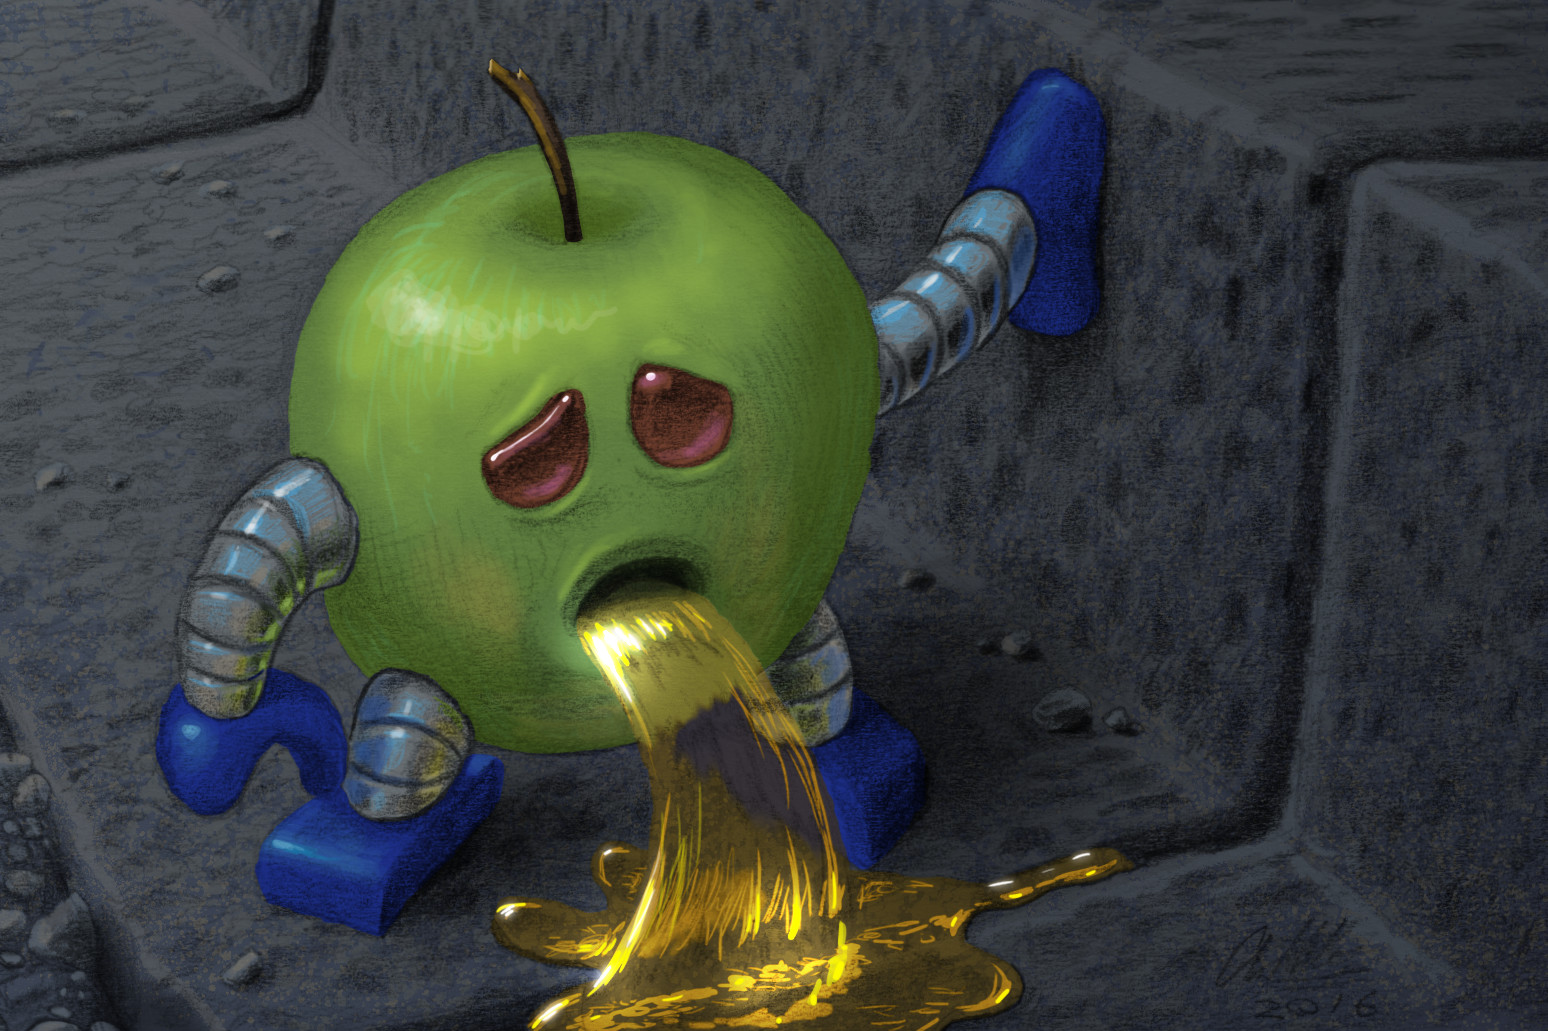 Anthony rosbottom drunk robot apple